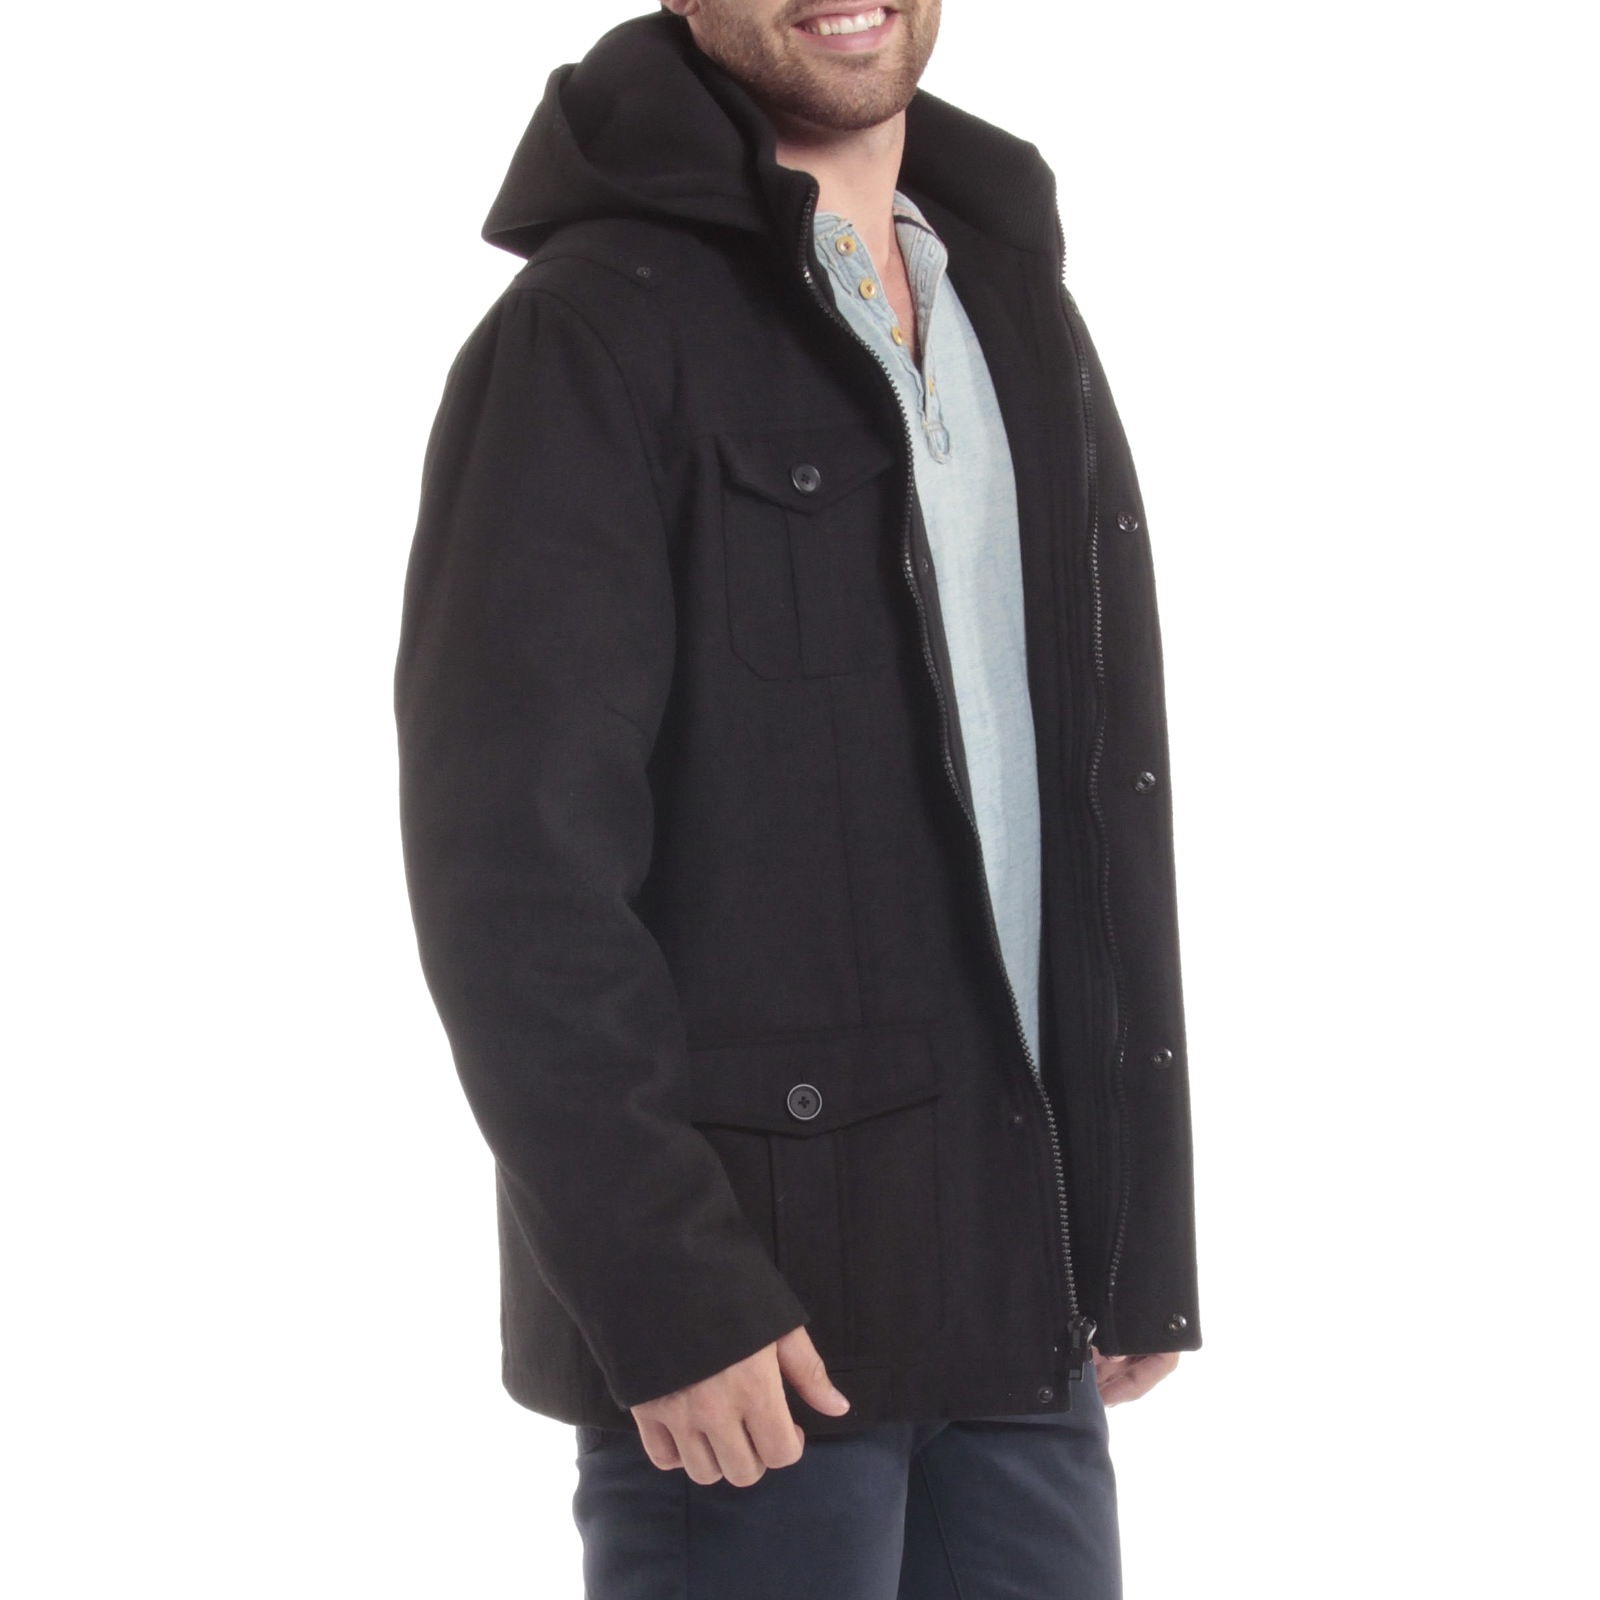 Alpine-Swiss-Noah-Mens-Wool-Coat-Parka-with-Removable-Hood-Jacket-Cargo-Pockets thumbnail 22